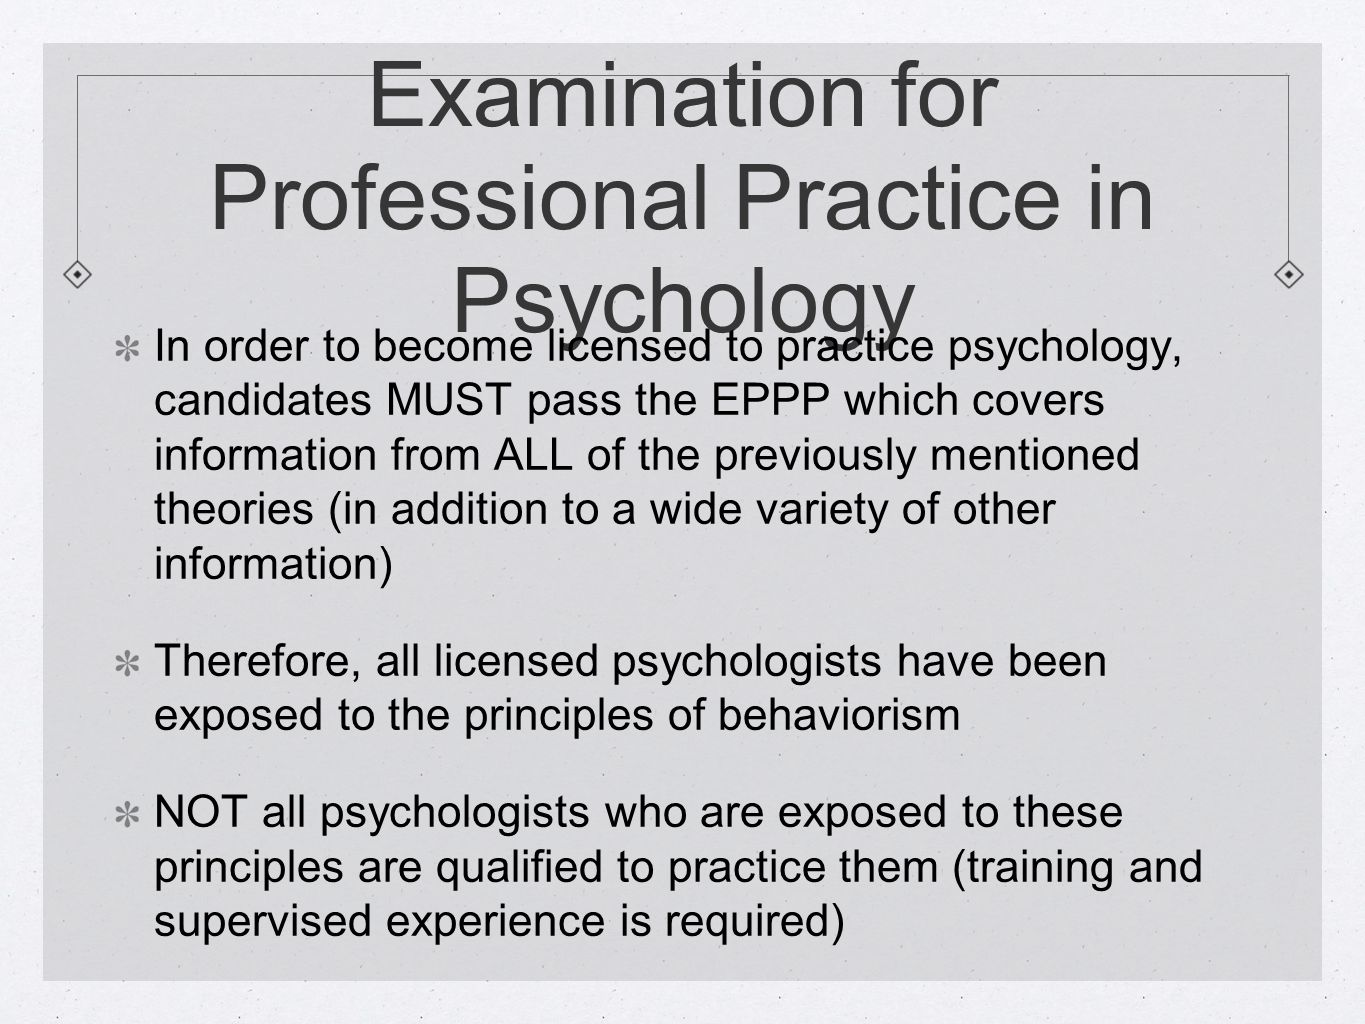 Examination for Professional Practice in Psychology In order to become licensed to practice psychology, candidates MUST pass the EPPP which covers information from ALL of the previously mentioned theories (in addition to a wide variety of other information) Therefore, all licensed psychologists have been exposed to the principles of behaviorism NOT all psychologists who are exposed to these principles are qualified to practice them (training and supervised experience is required)